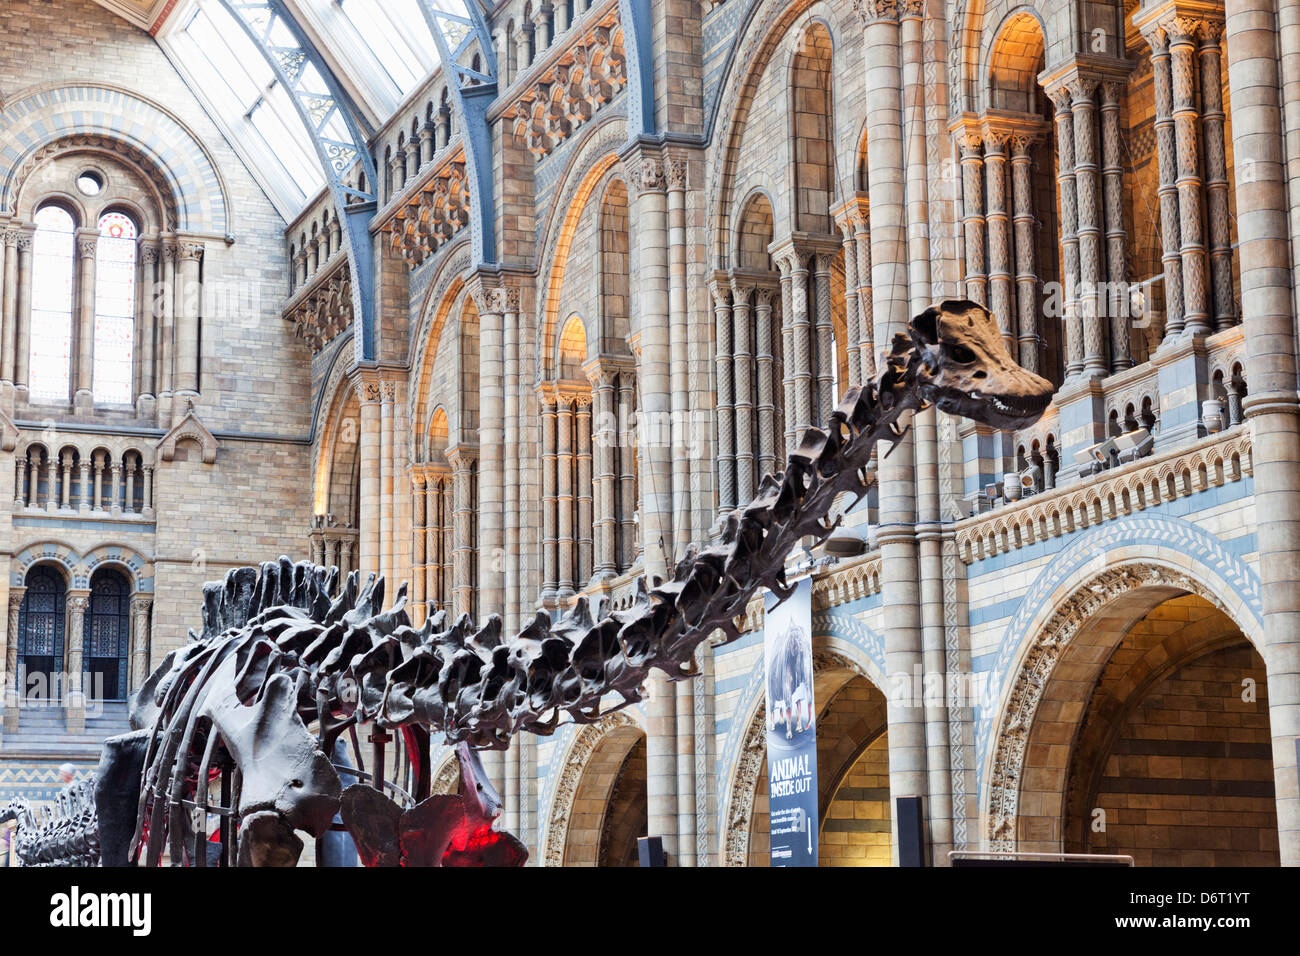 UK, London, Kensington, Natural History Museum, Dinosaur exhibit - Stock Image